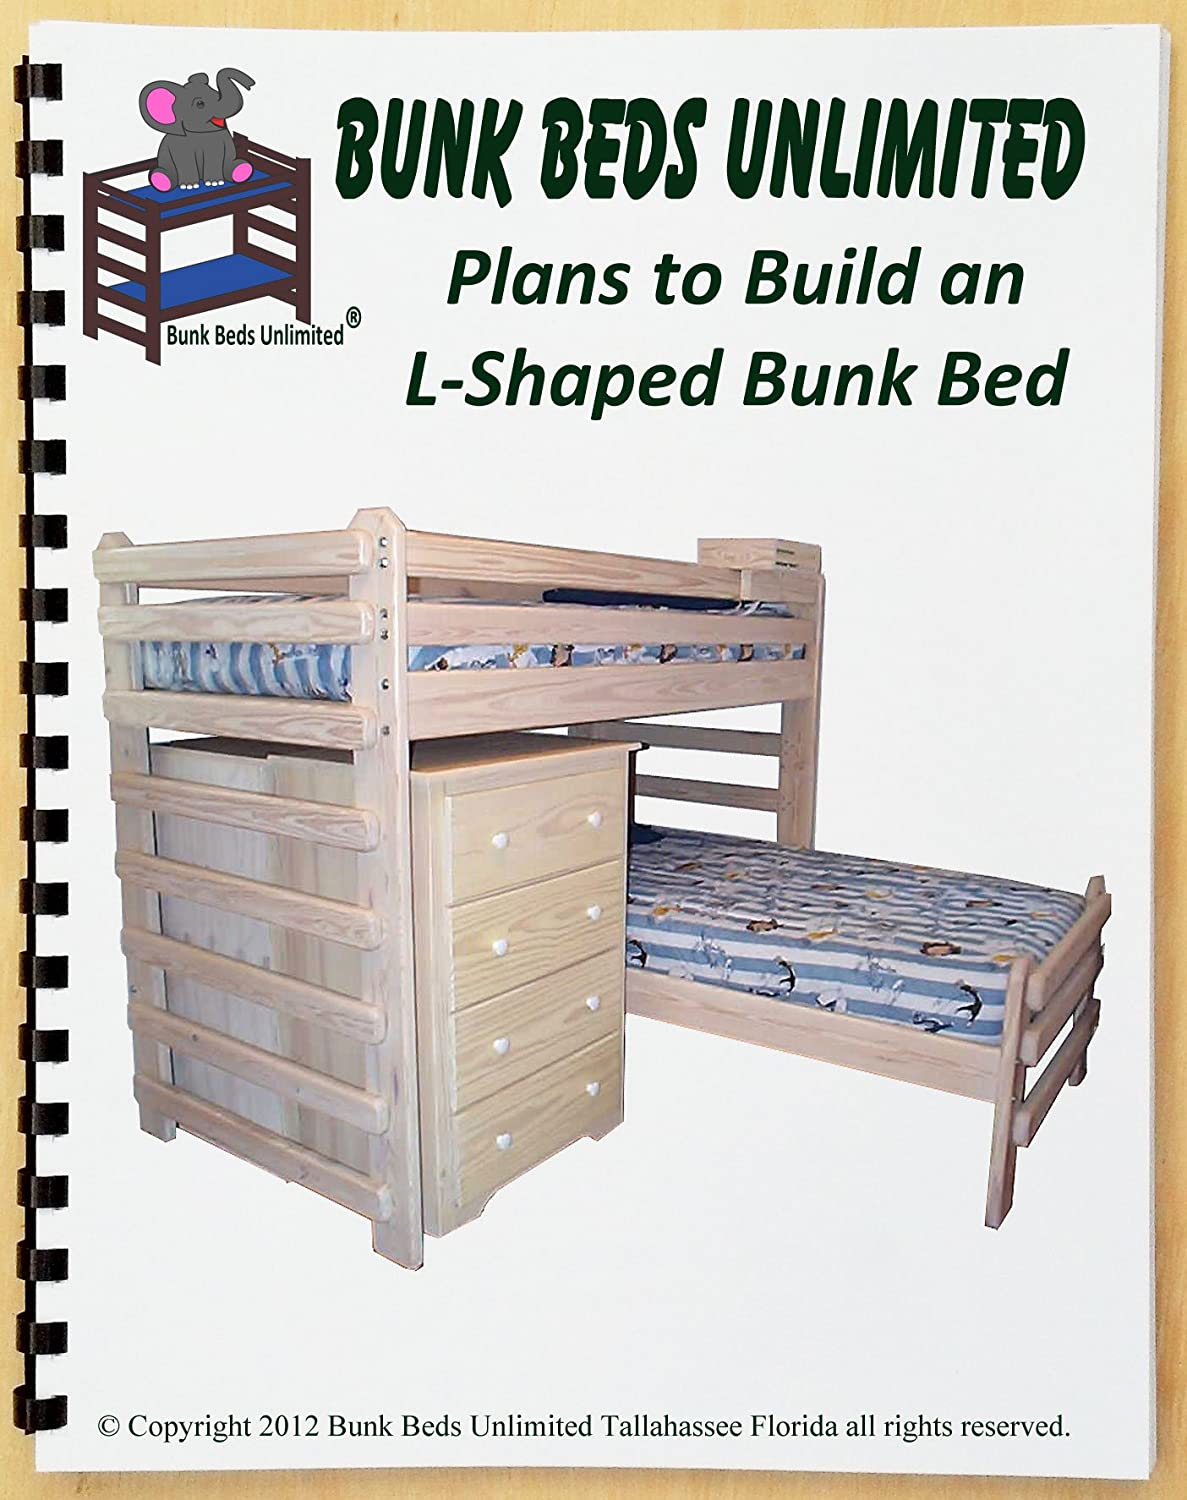 Bunk Bed DIY Woodworking Plan to Own Max 77% Time sale OFF Your L-Shaped ov Twin Build